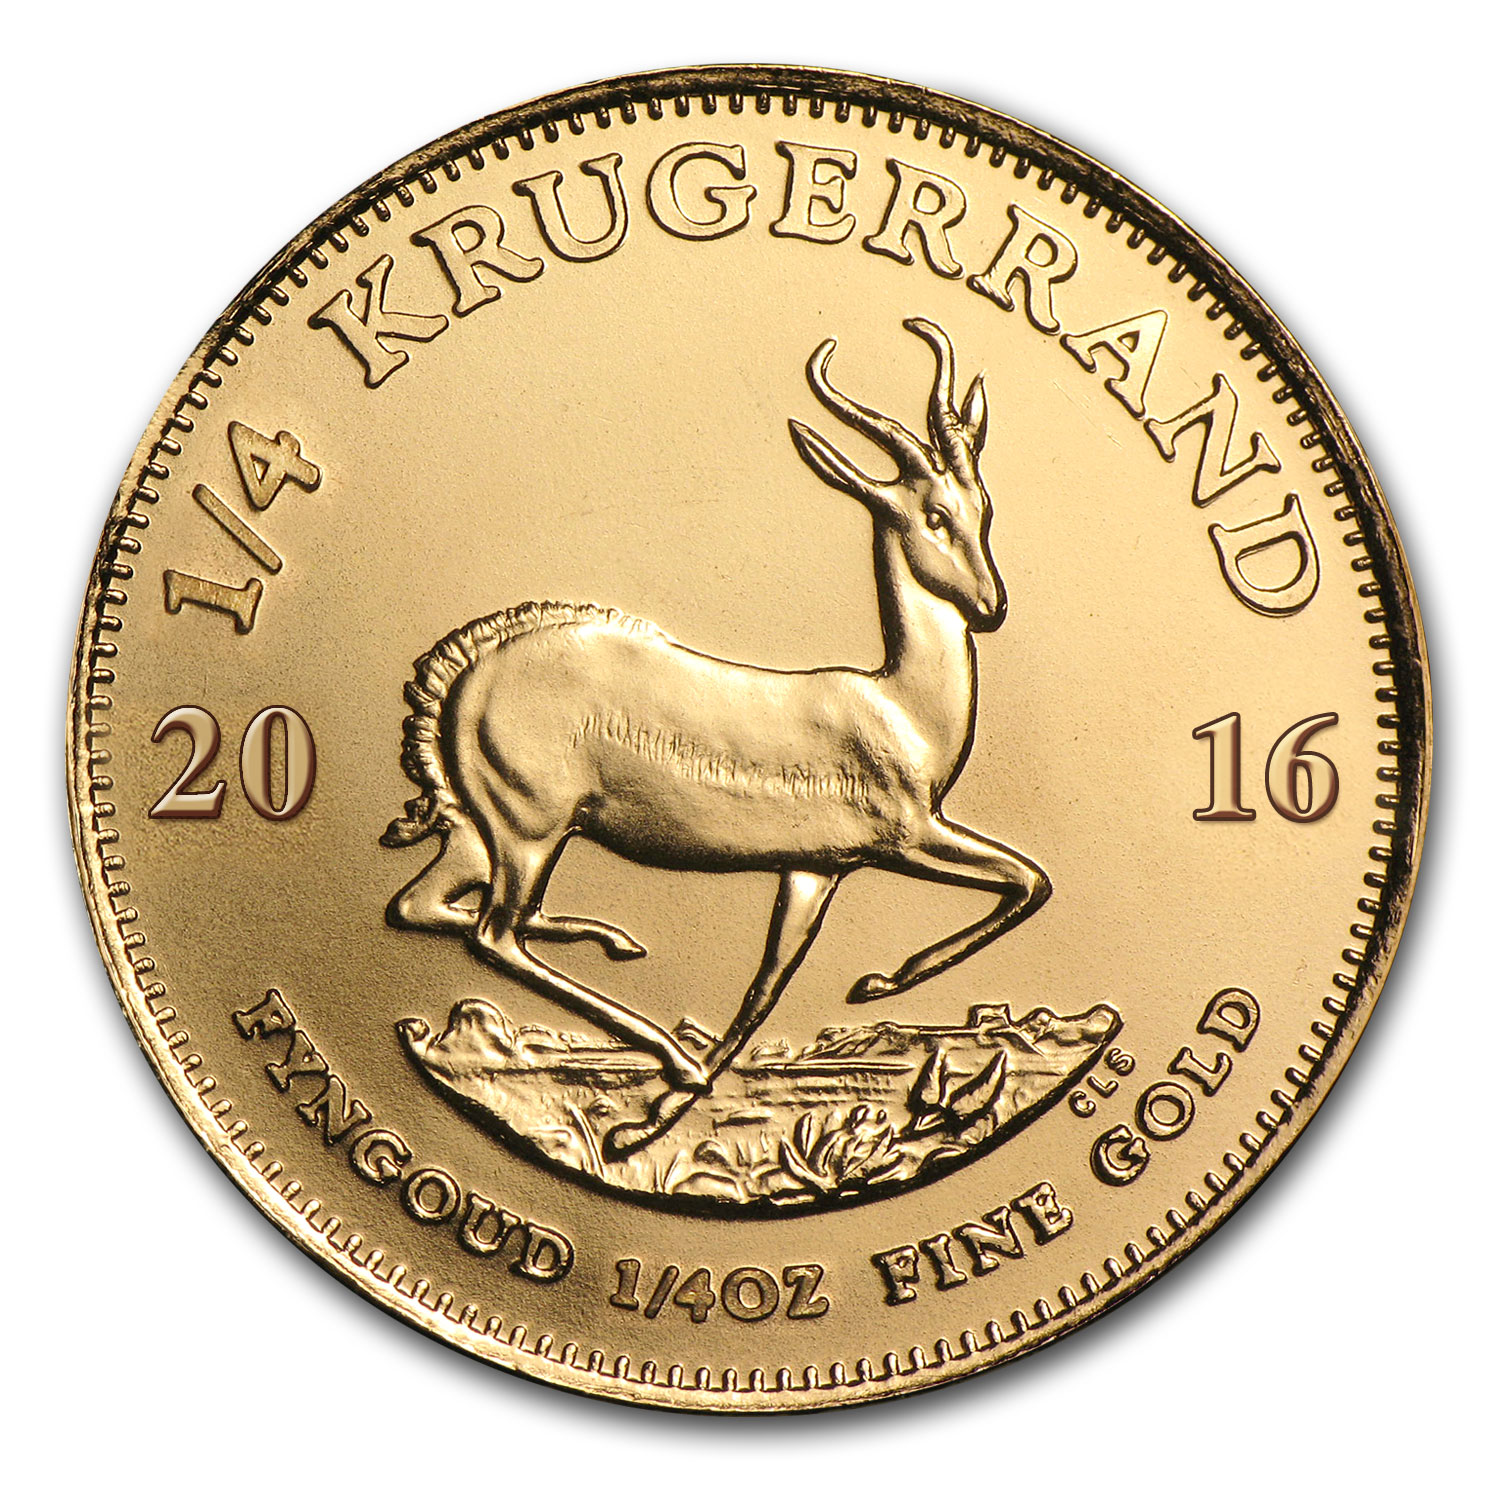 2016 South Africa 1/4 oz Gold Krugerrand